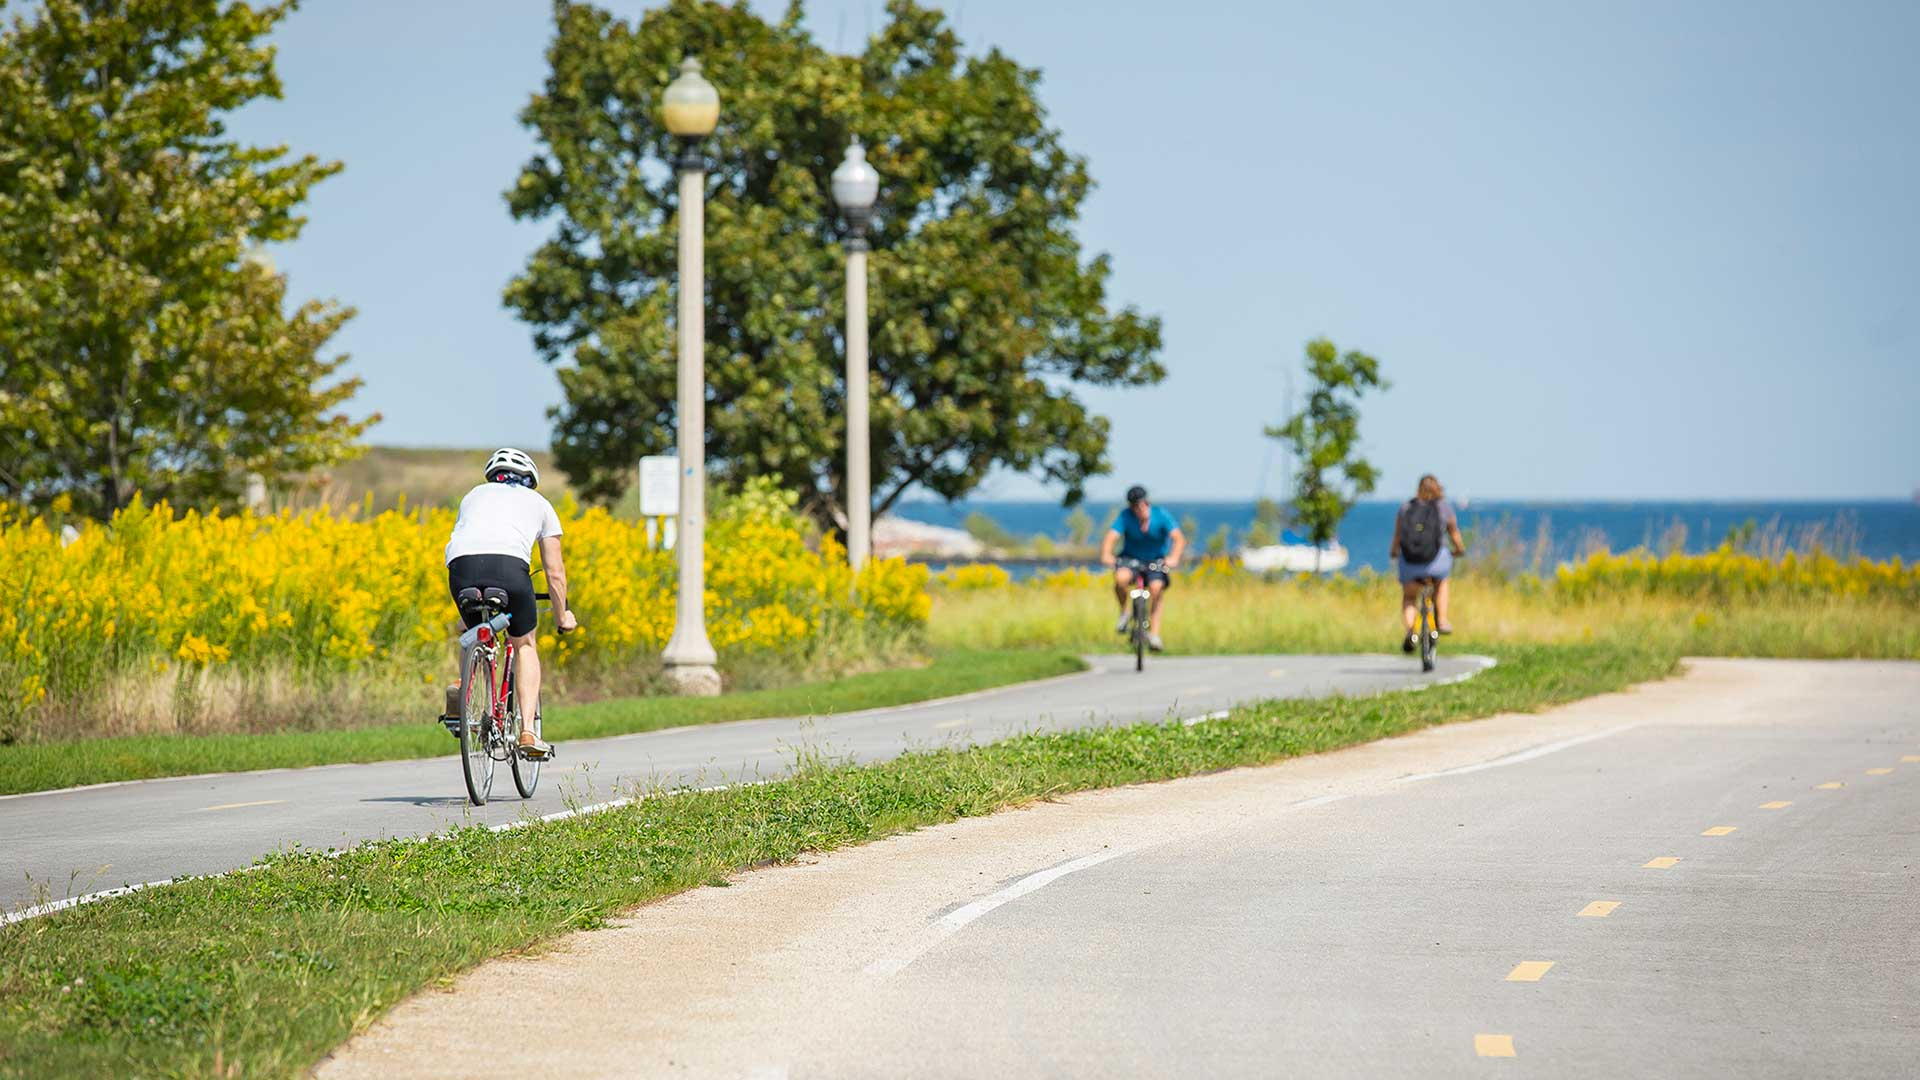 A few people ride bikes on a path near Lake Michigan. The lake is ahead; grass and trees line the path along the left.